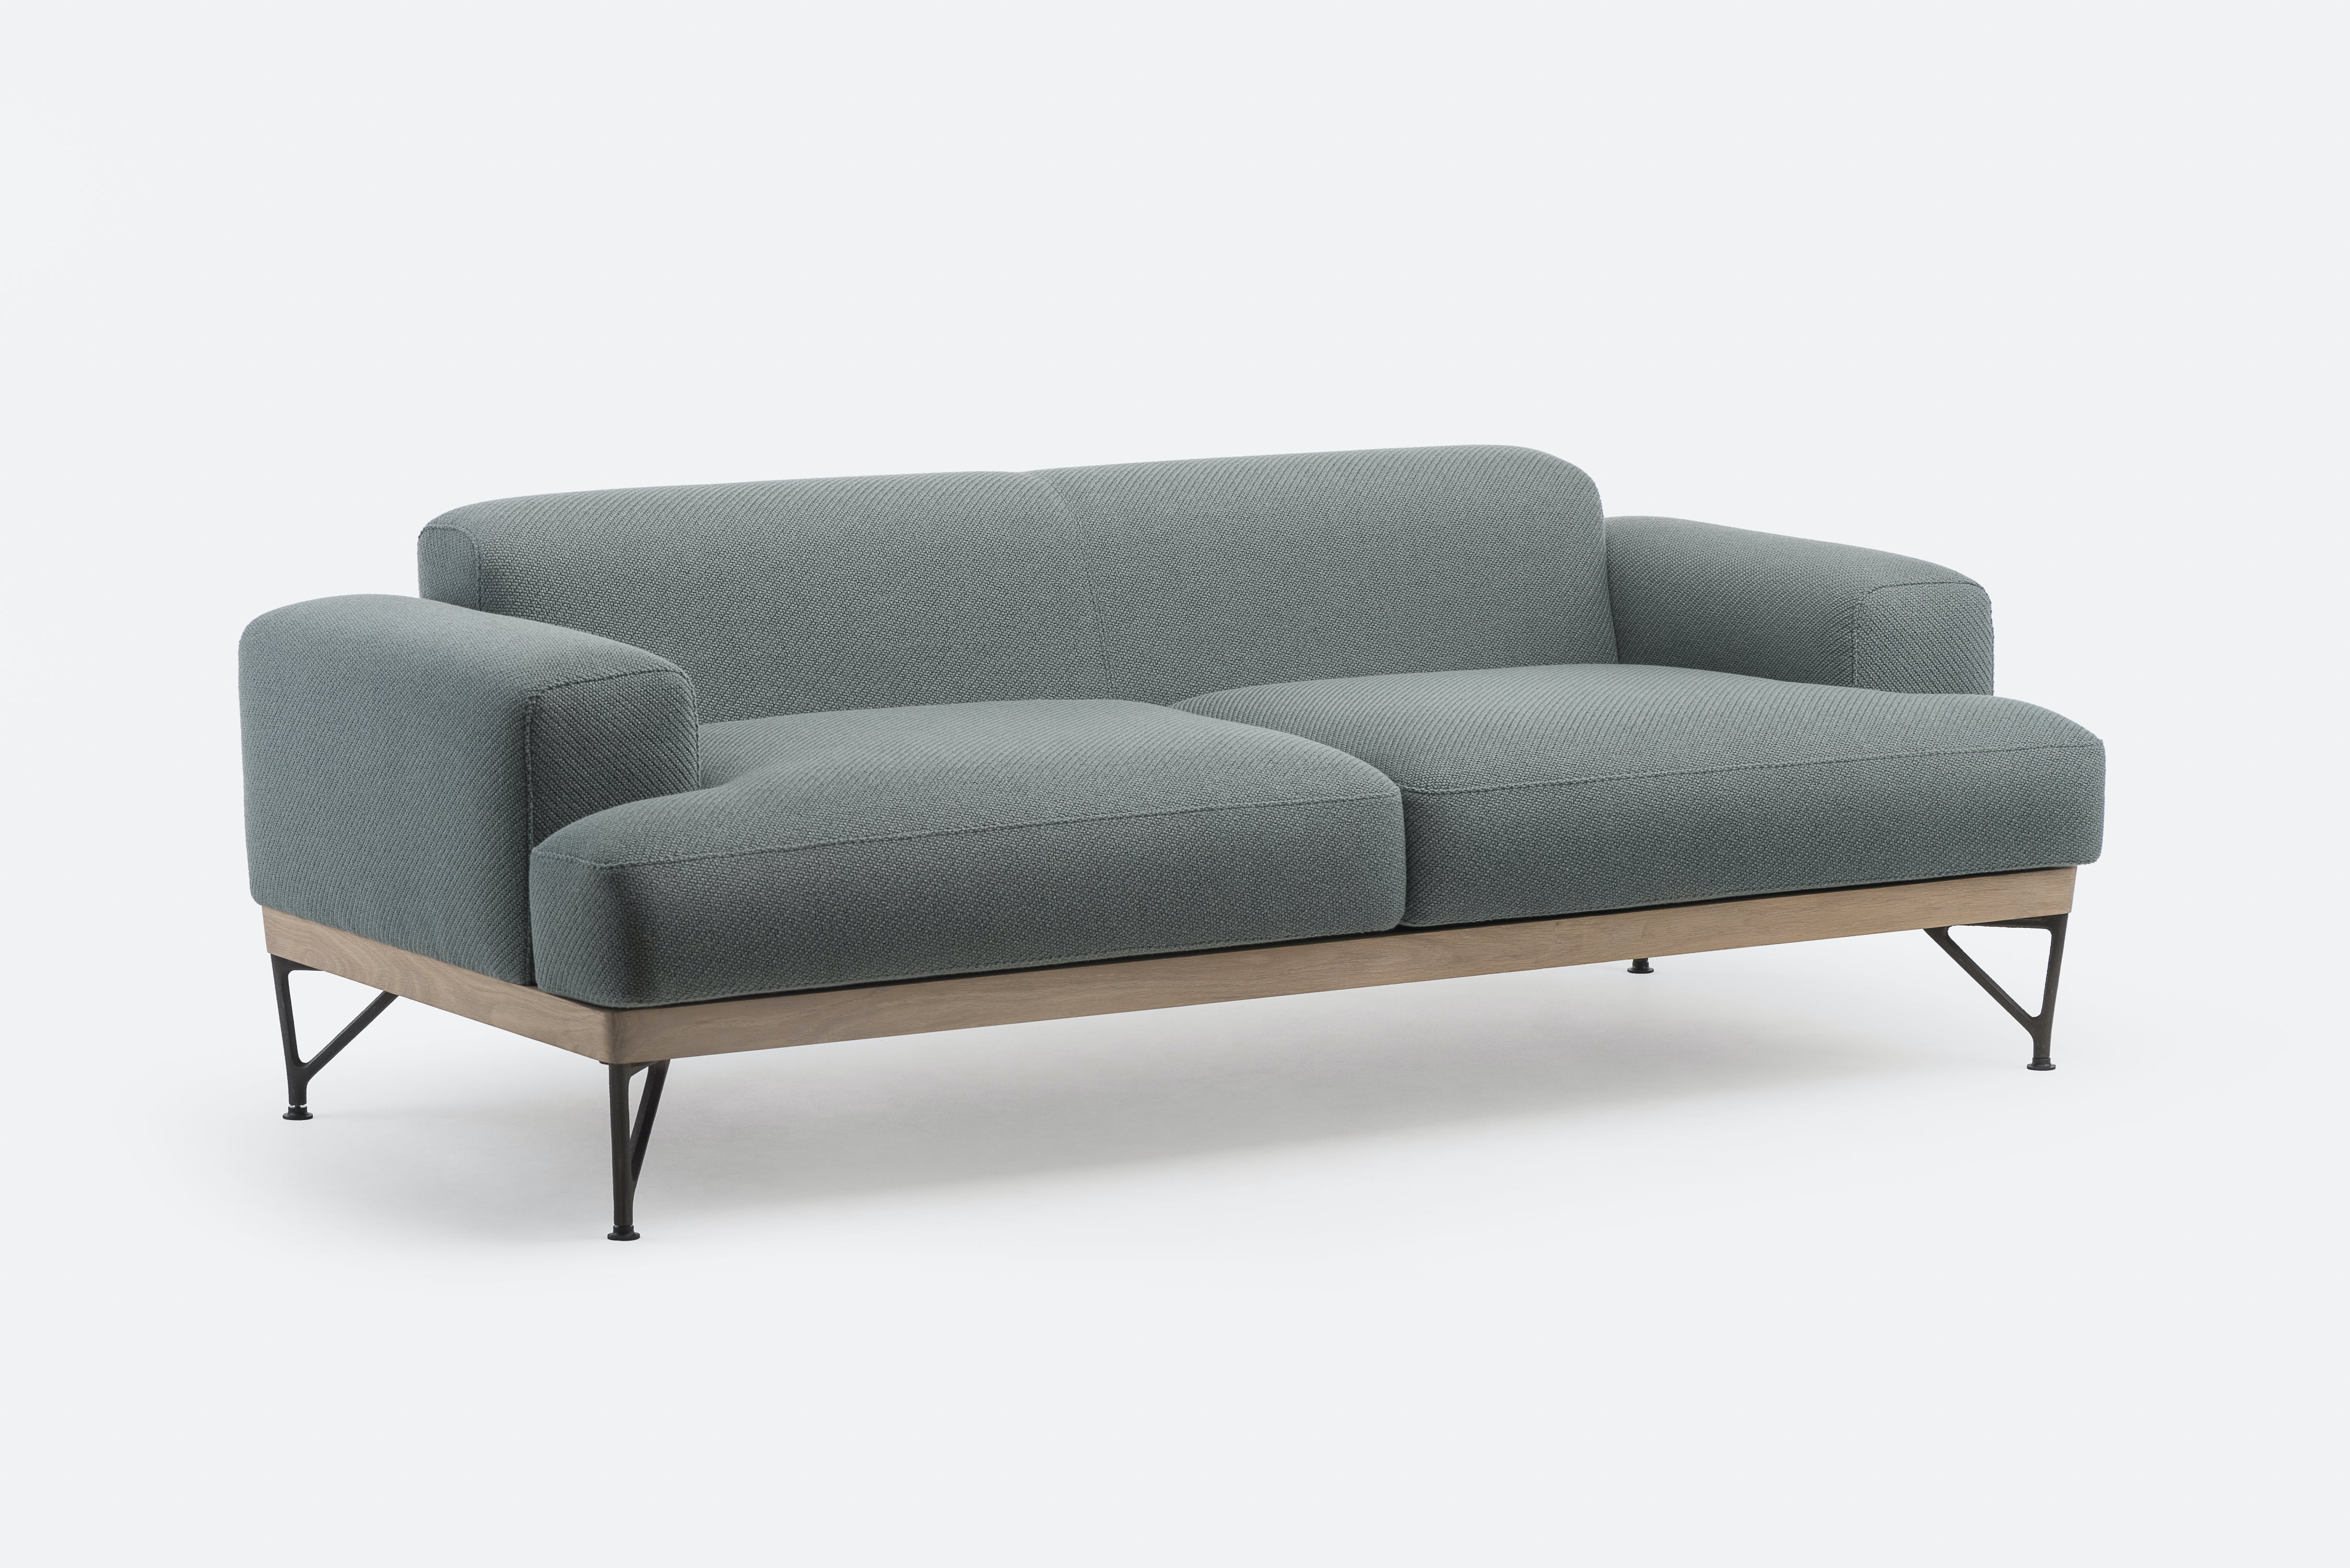 386 M Armstrong Sofa By Matthew Hilton In White Oiled Oak And Coda 2 962